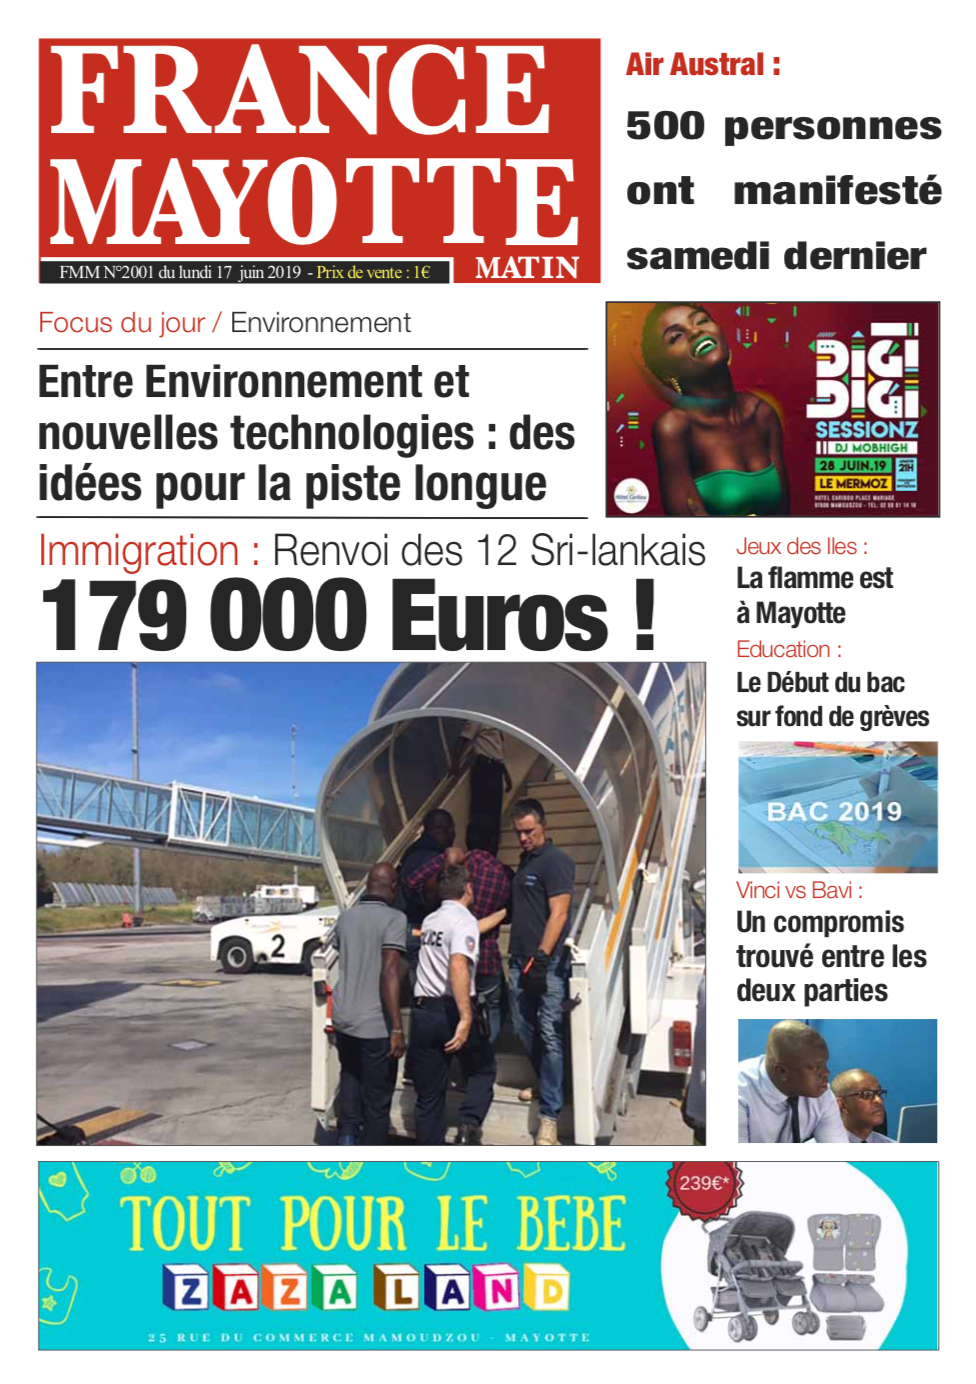 France Mayotte Lundi 17 juin 2019